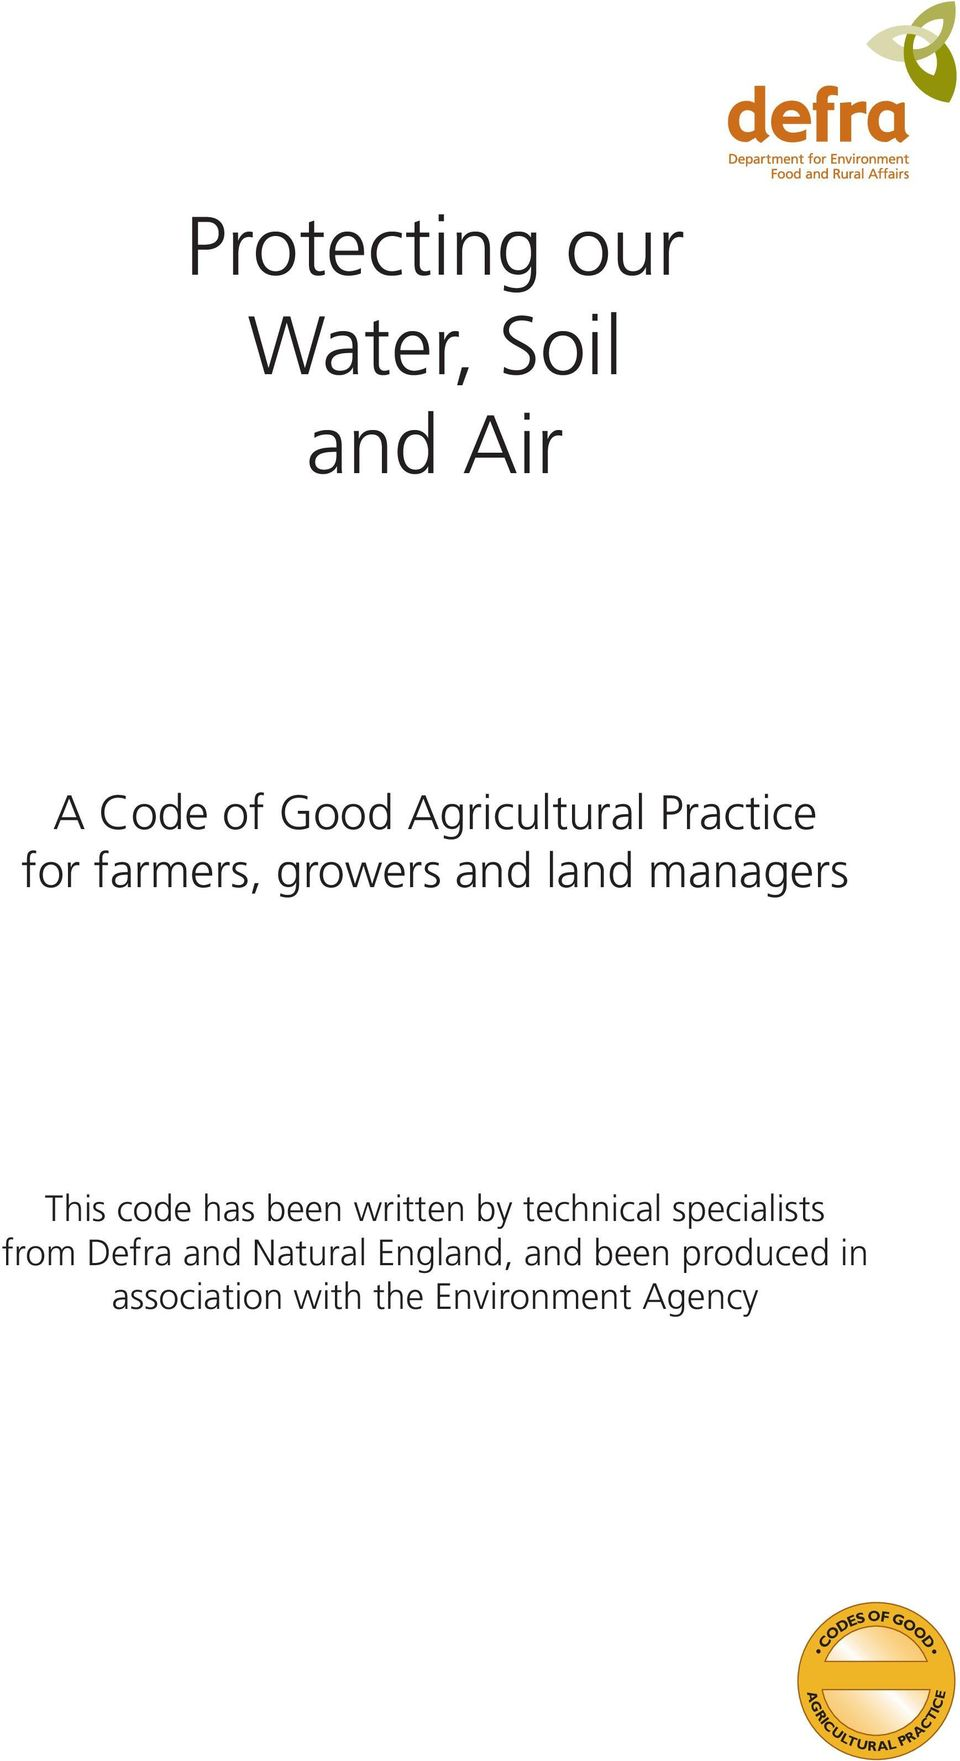 technical specialists from Defra and Natural England, and been produced